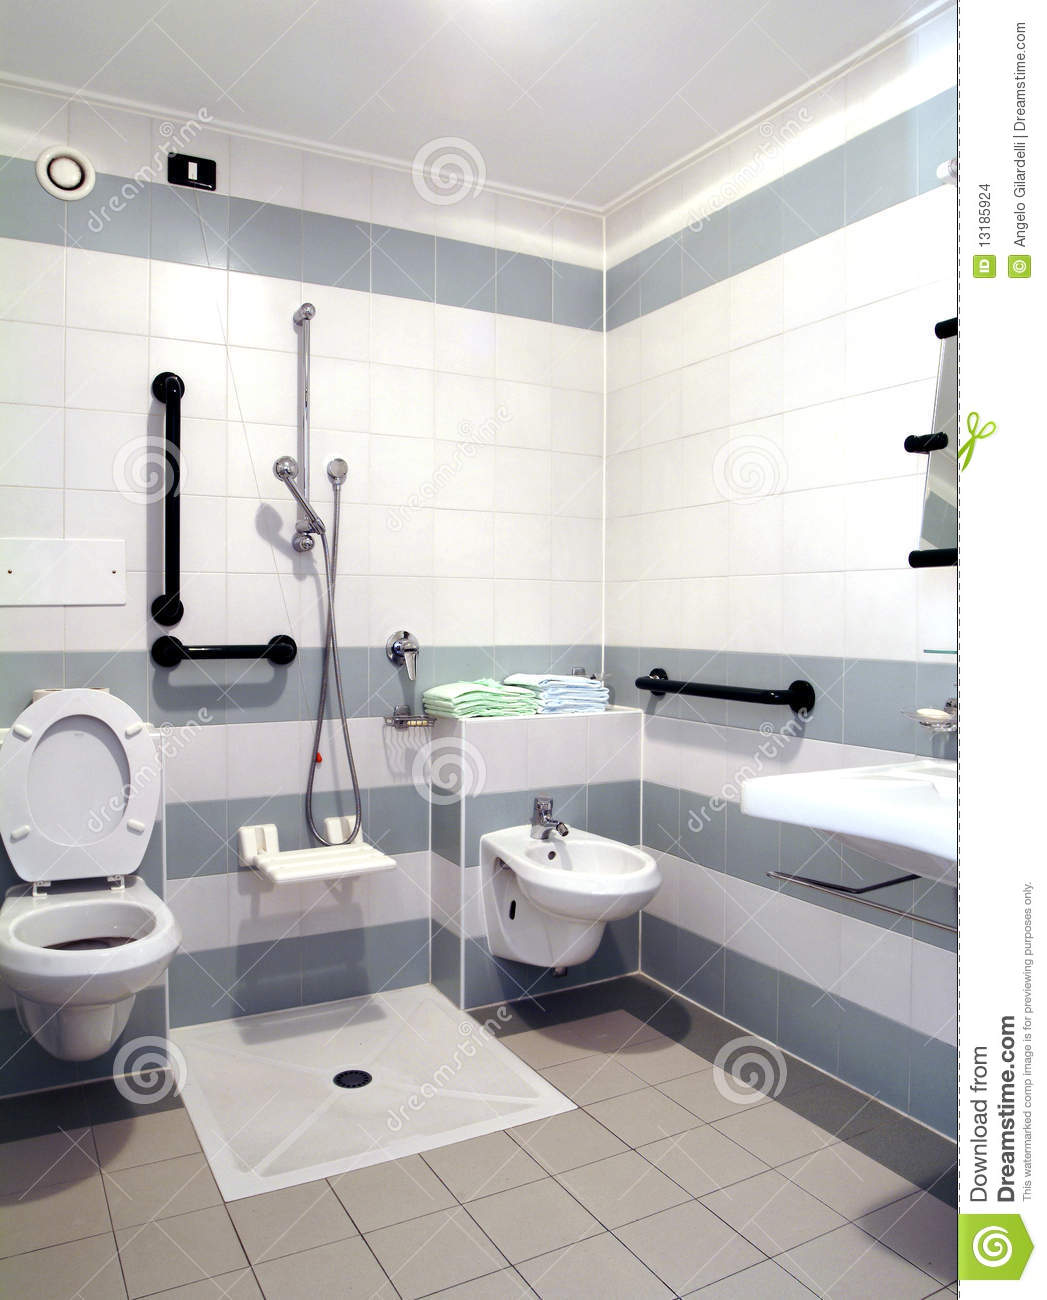 Barrier Free Bathroom Stock Photo Image Of Geriatric